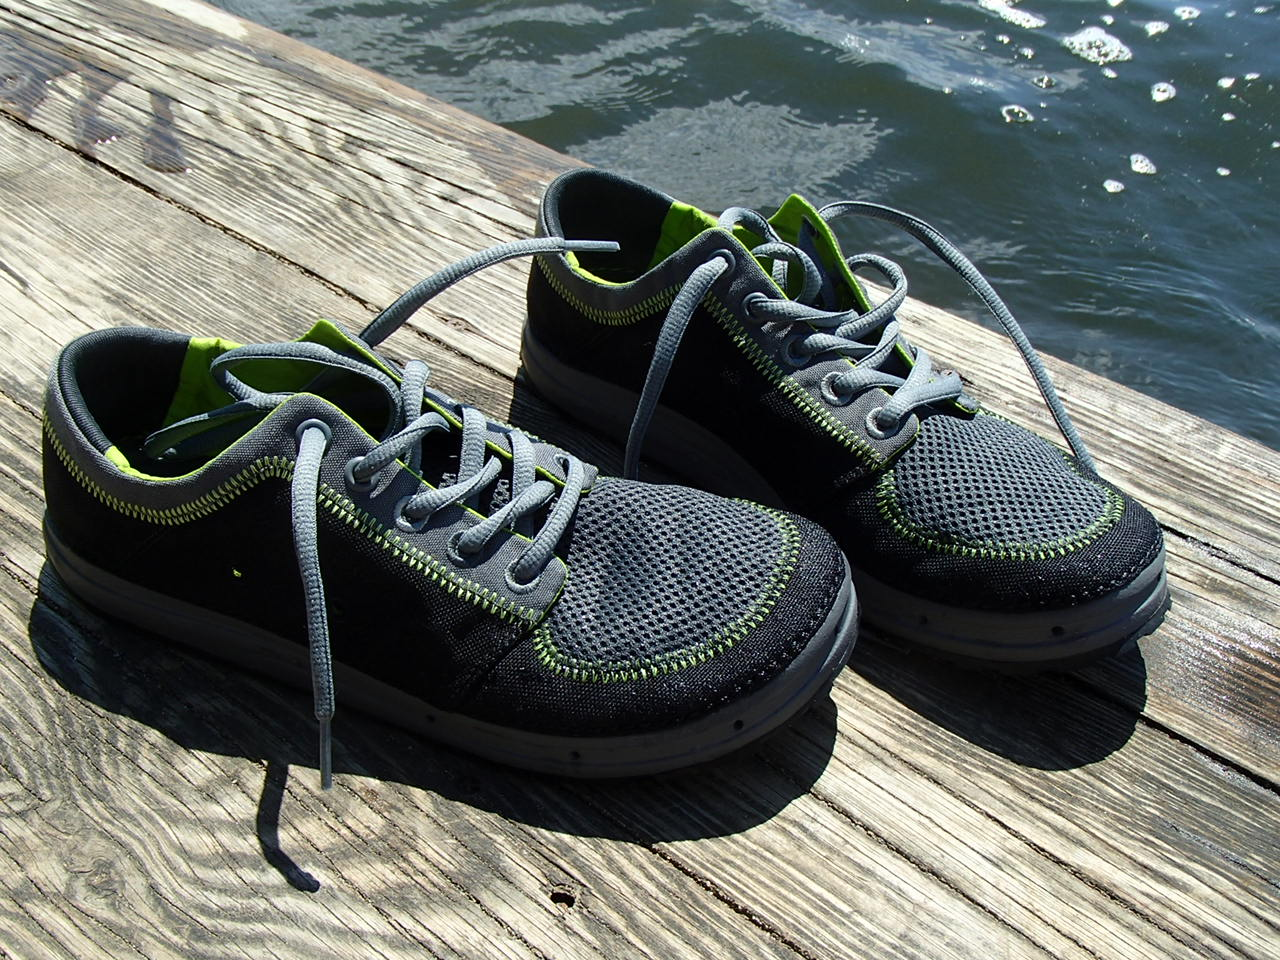 Astral Brewer Water Shoe Review | Kayak Dave's